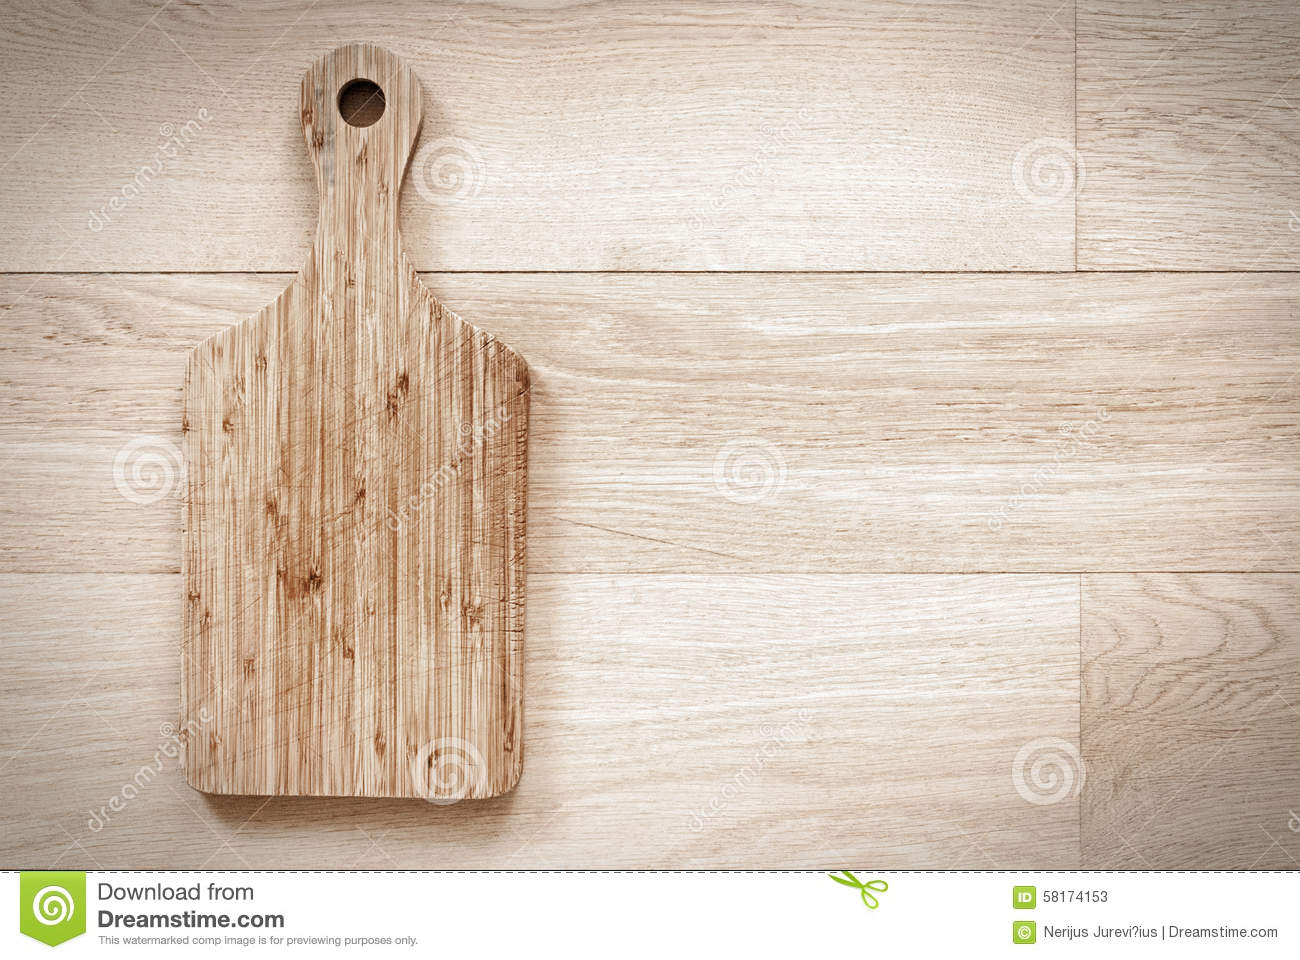 Old Wooden Cutting Board Stock Photo - Image: 58174153